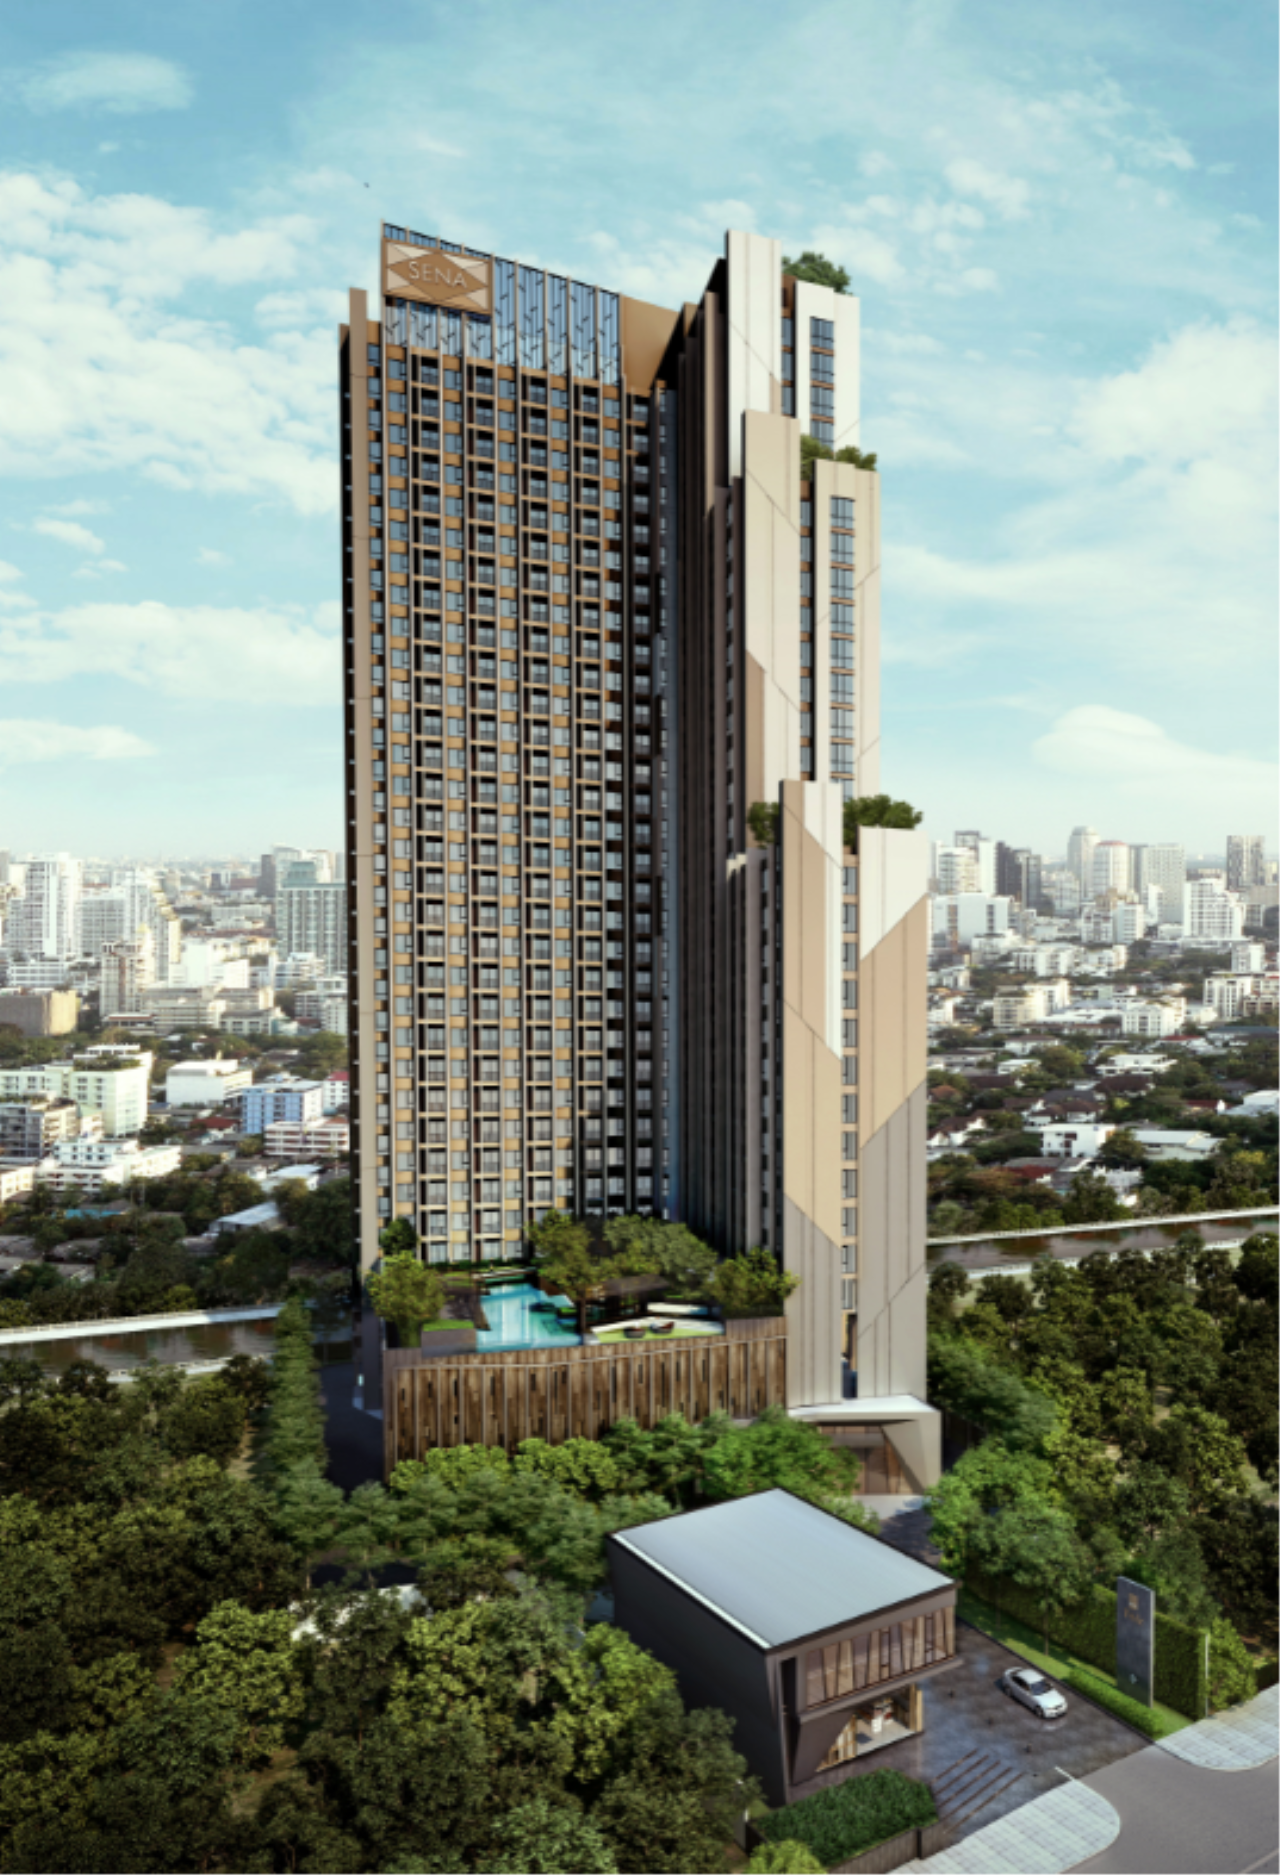 nich-pride-thonglor-petchaburi-project.png